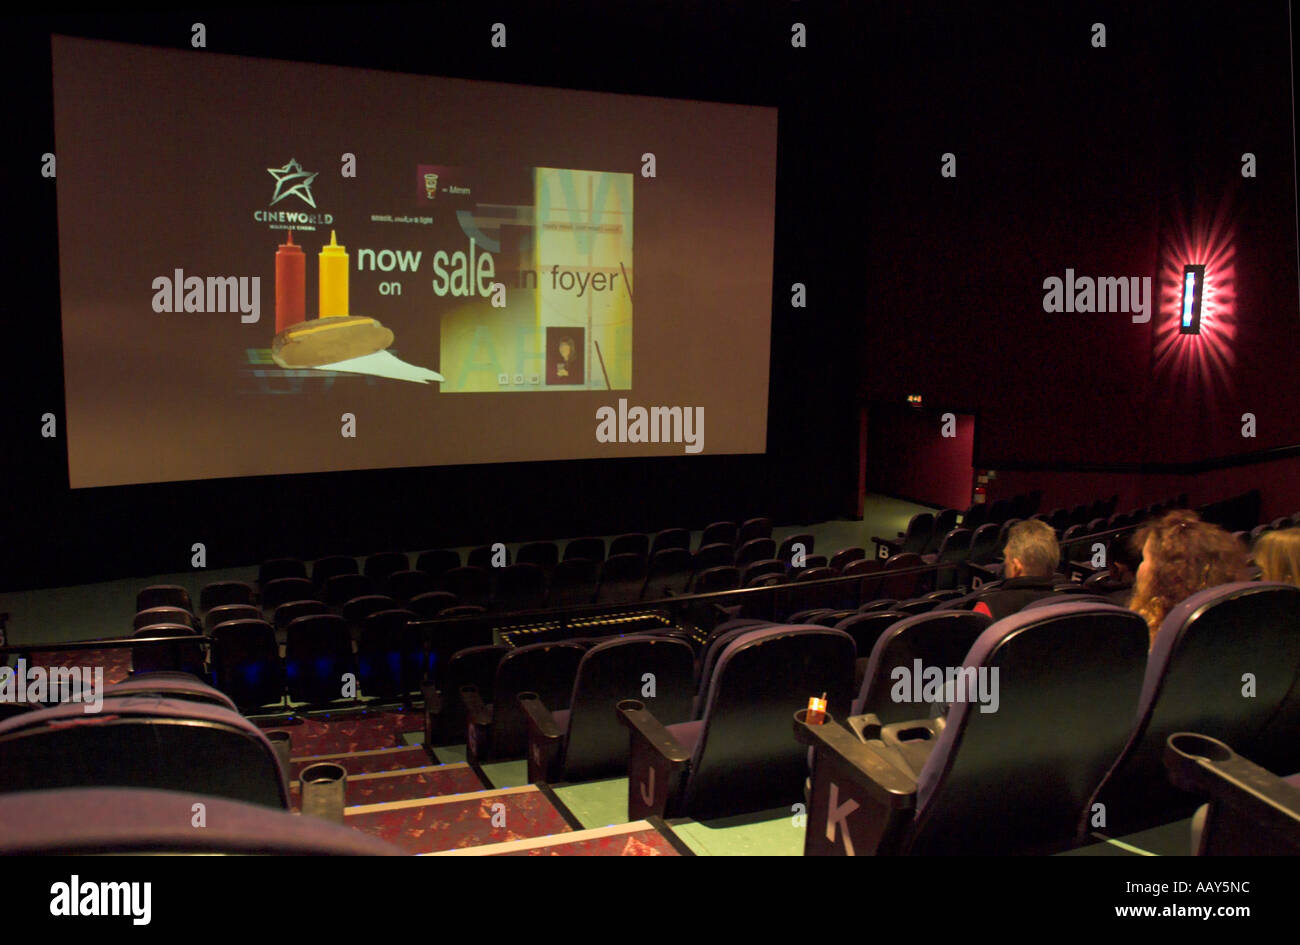 europe uk england cinema auditorium - Stock Image